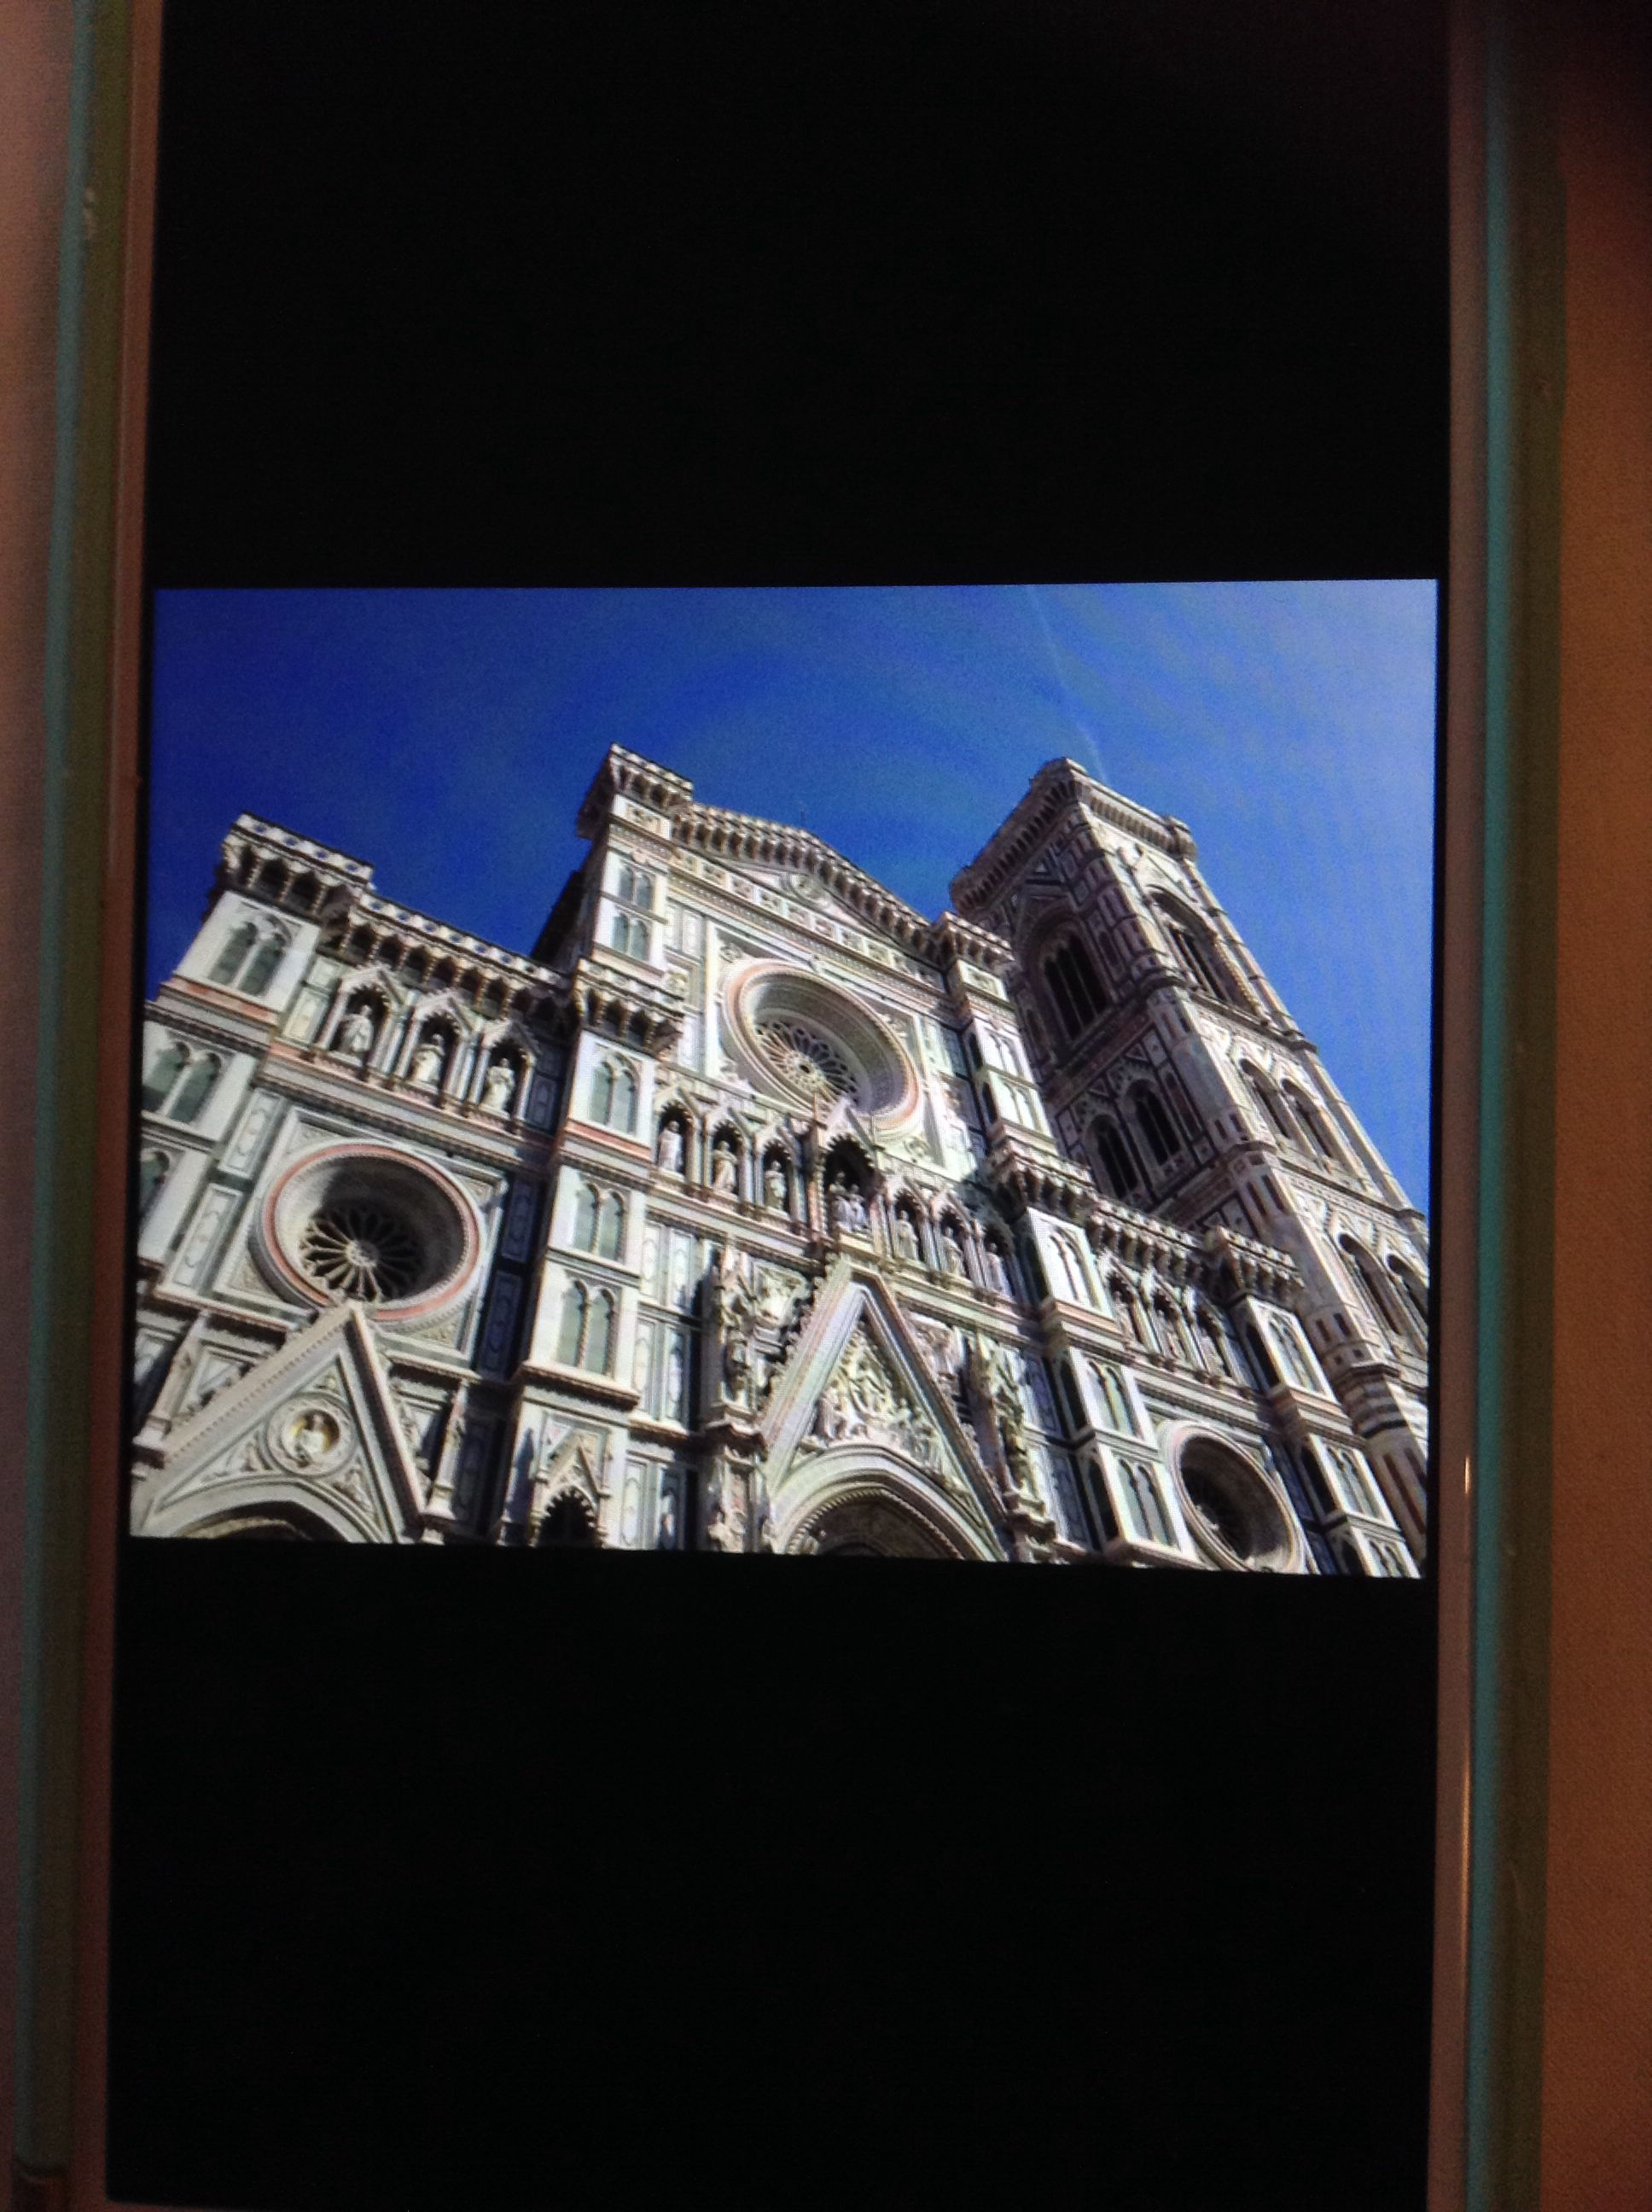 Have you been to the duomo? I love it!!!